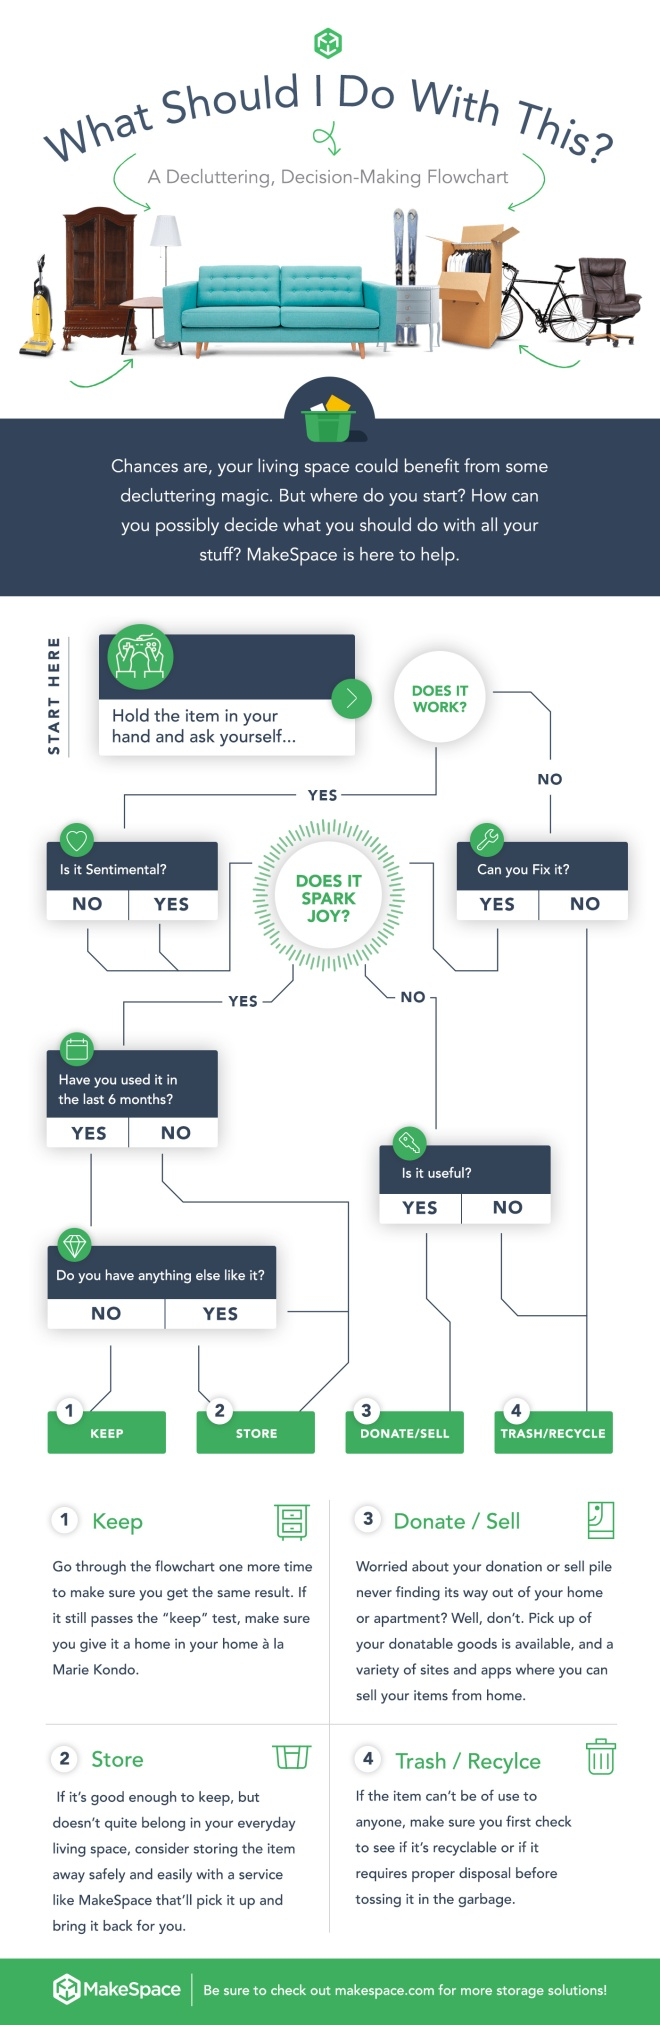 decluttering-flowchart-makespace-storage